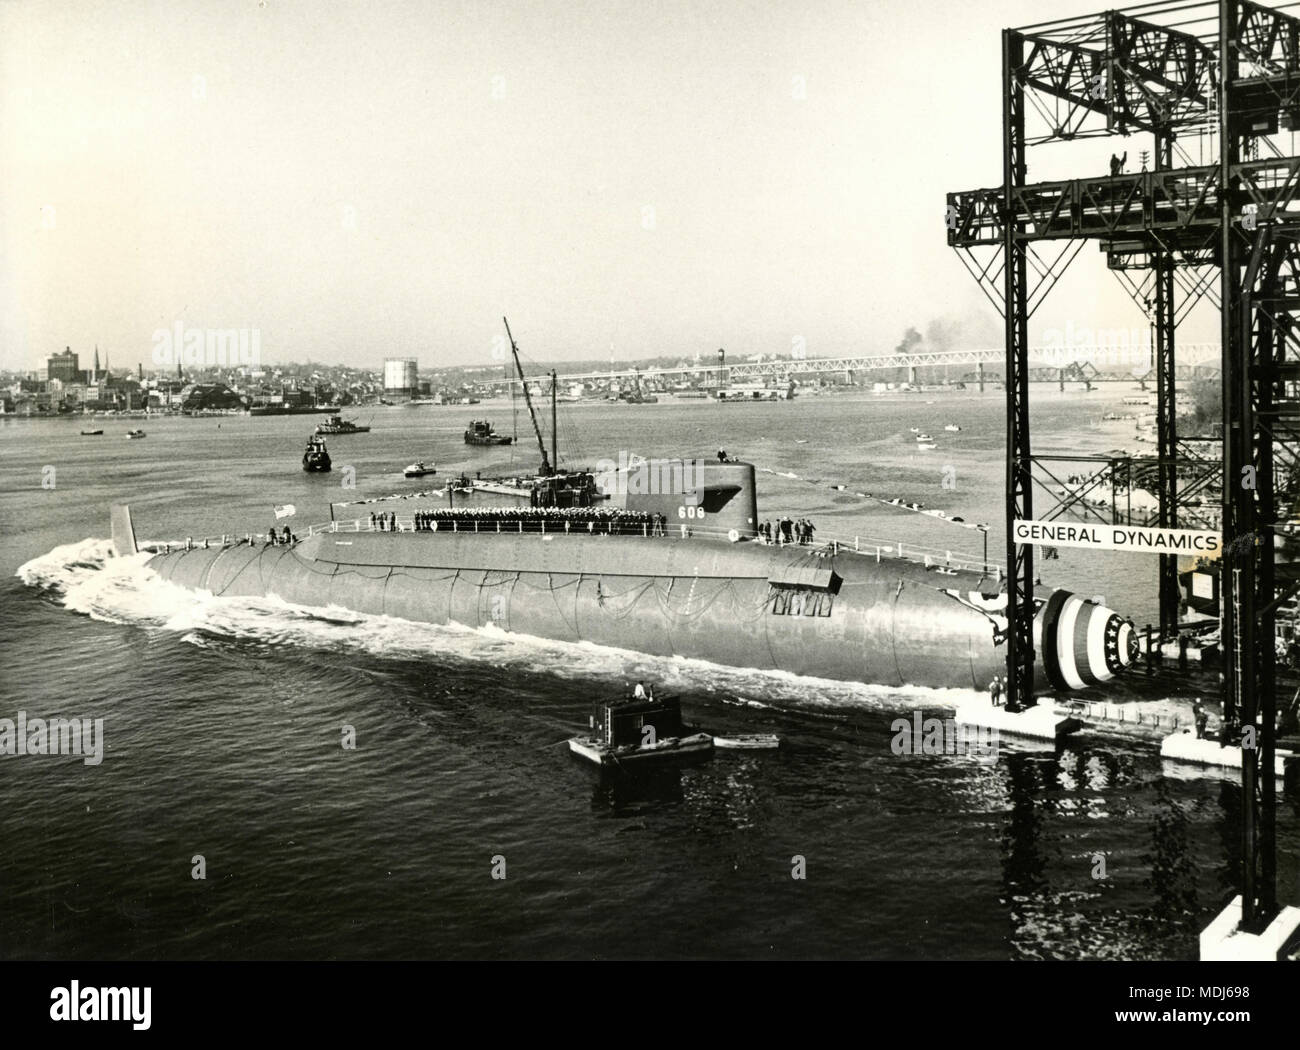 Launching of atomic-powered submarine Ethan Allen, Groton, Connecticut, USA 1960 - Stock Image